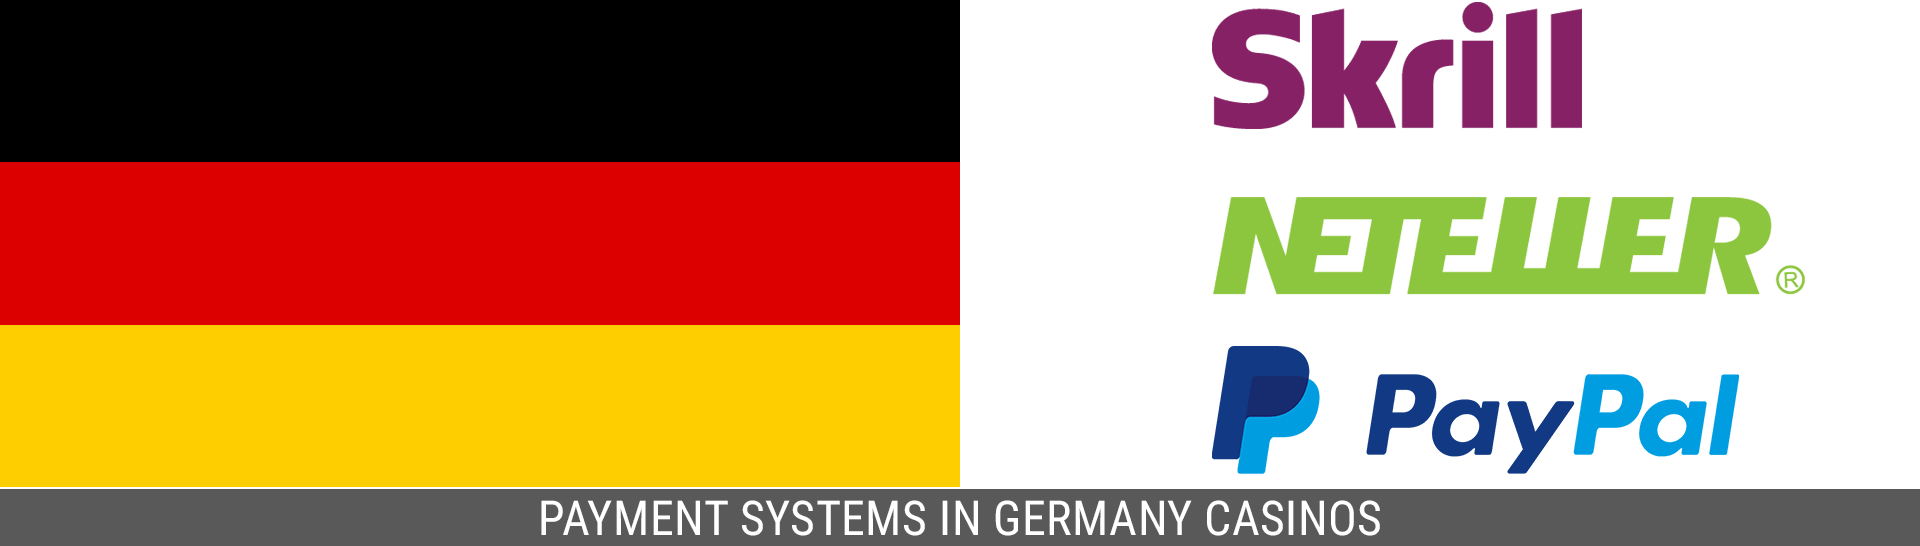 Germany casinos payments systems.